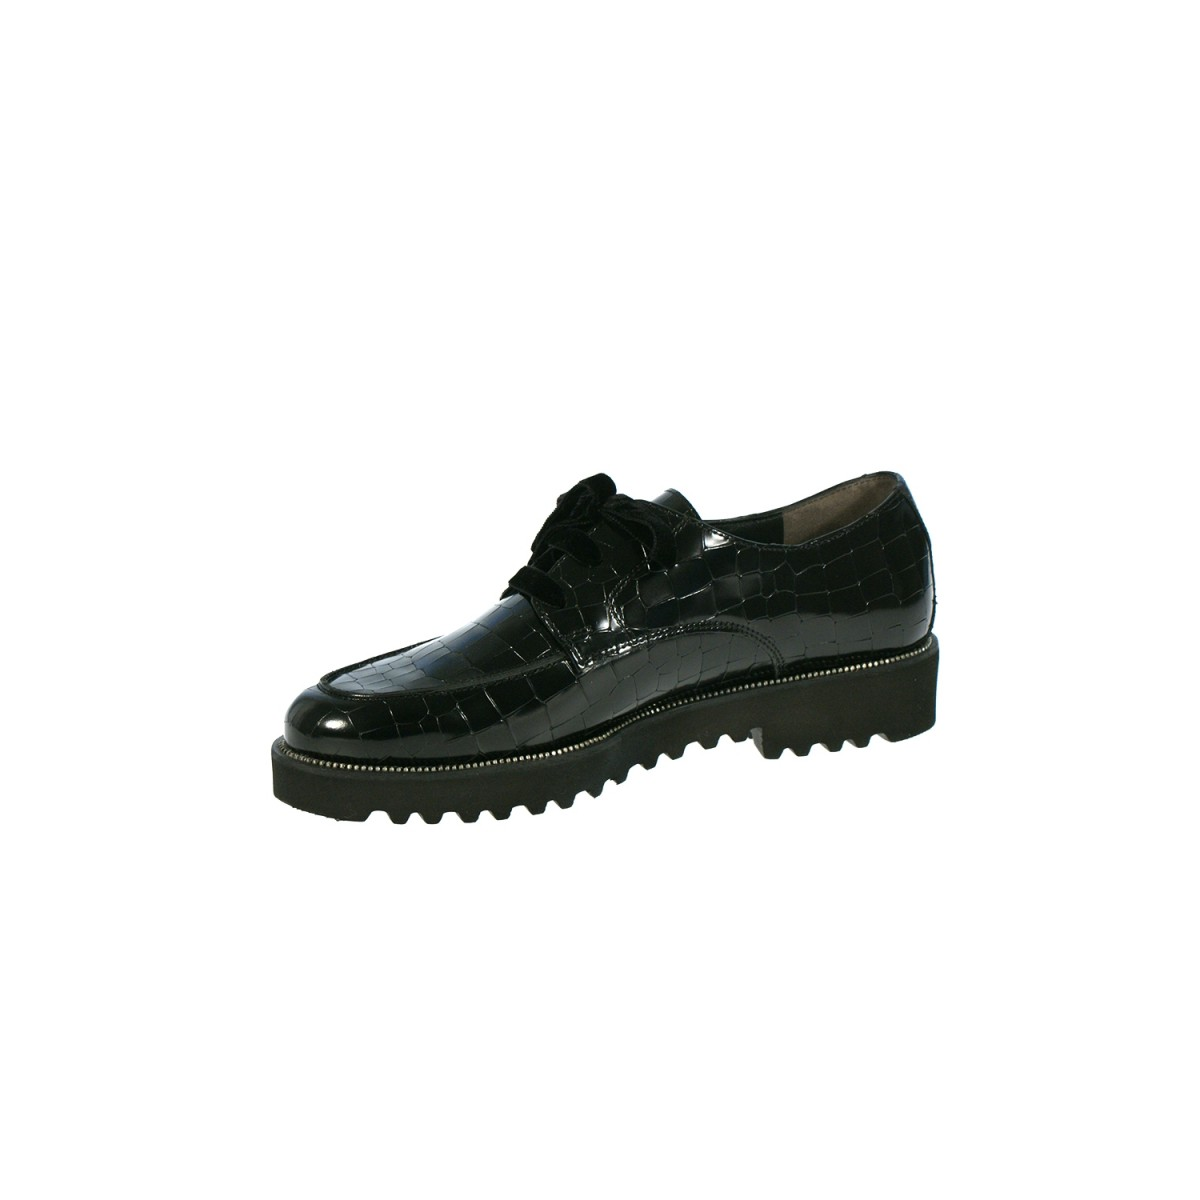 Paul Green 2629-04 Croc Black-35